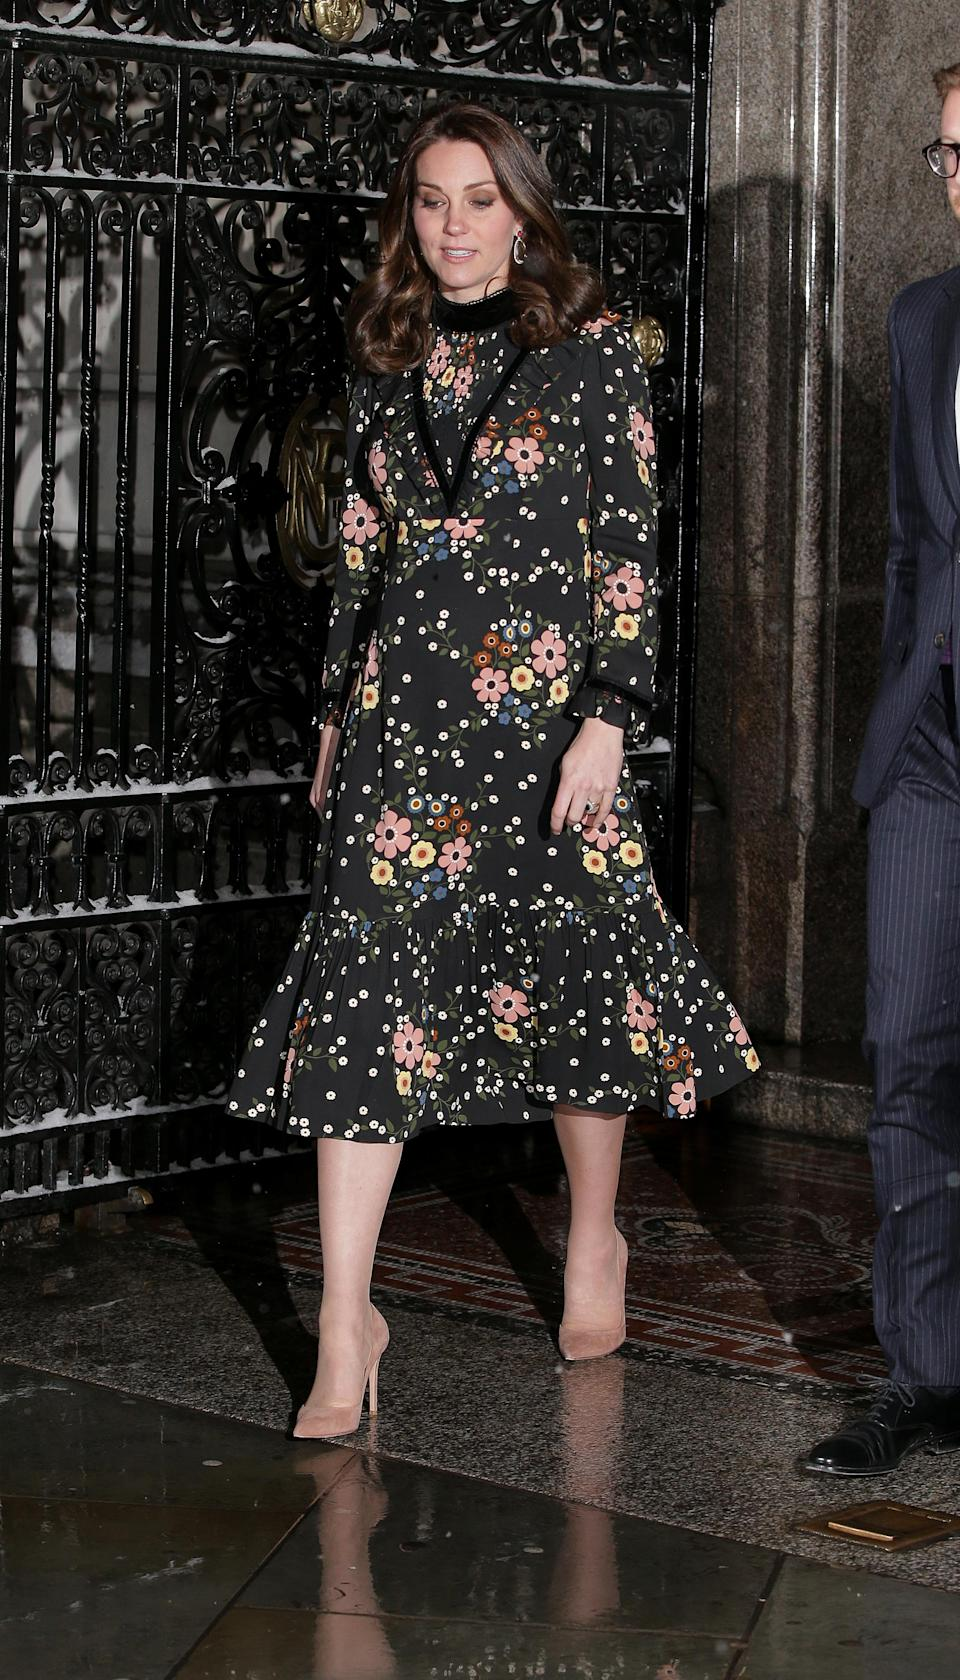 <p><strong>The occassion:</strong> Leaving the 'Victorian Giants' exhibition at National Portrait Gallery. <br><strong>The look:</strong> A floral Orla Kiely dress with Gianvito Rossi nude pumps and Kiki McDonough drop earrings. <br>[Photo: Getty] </p>